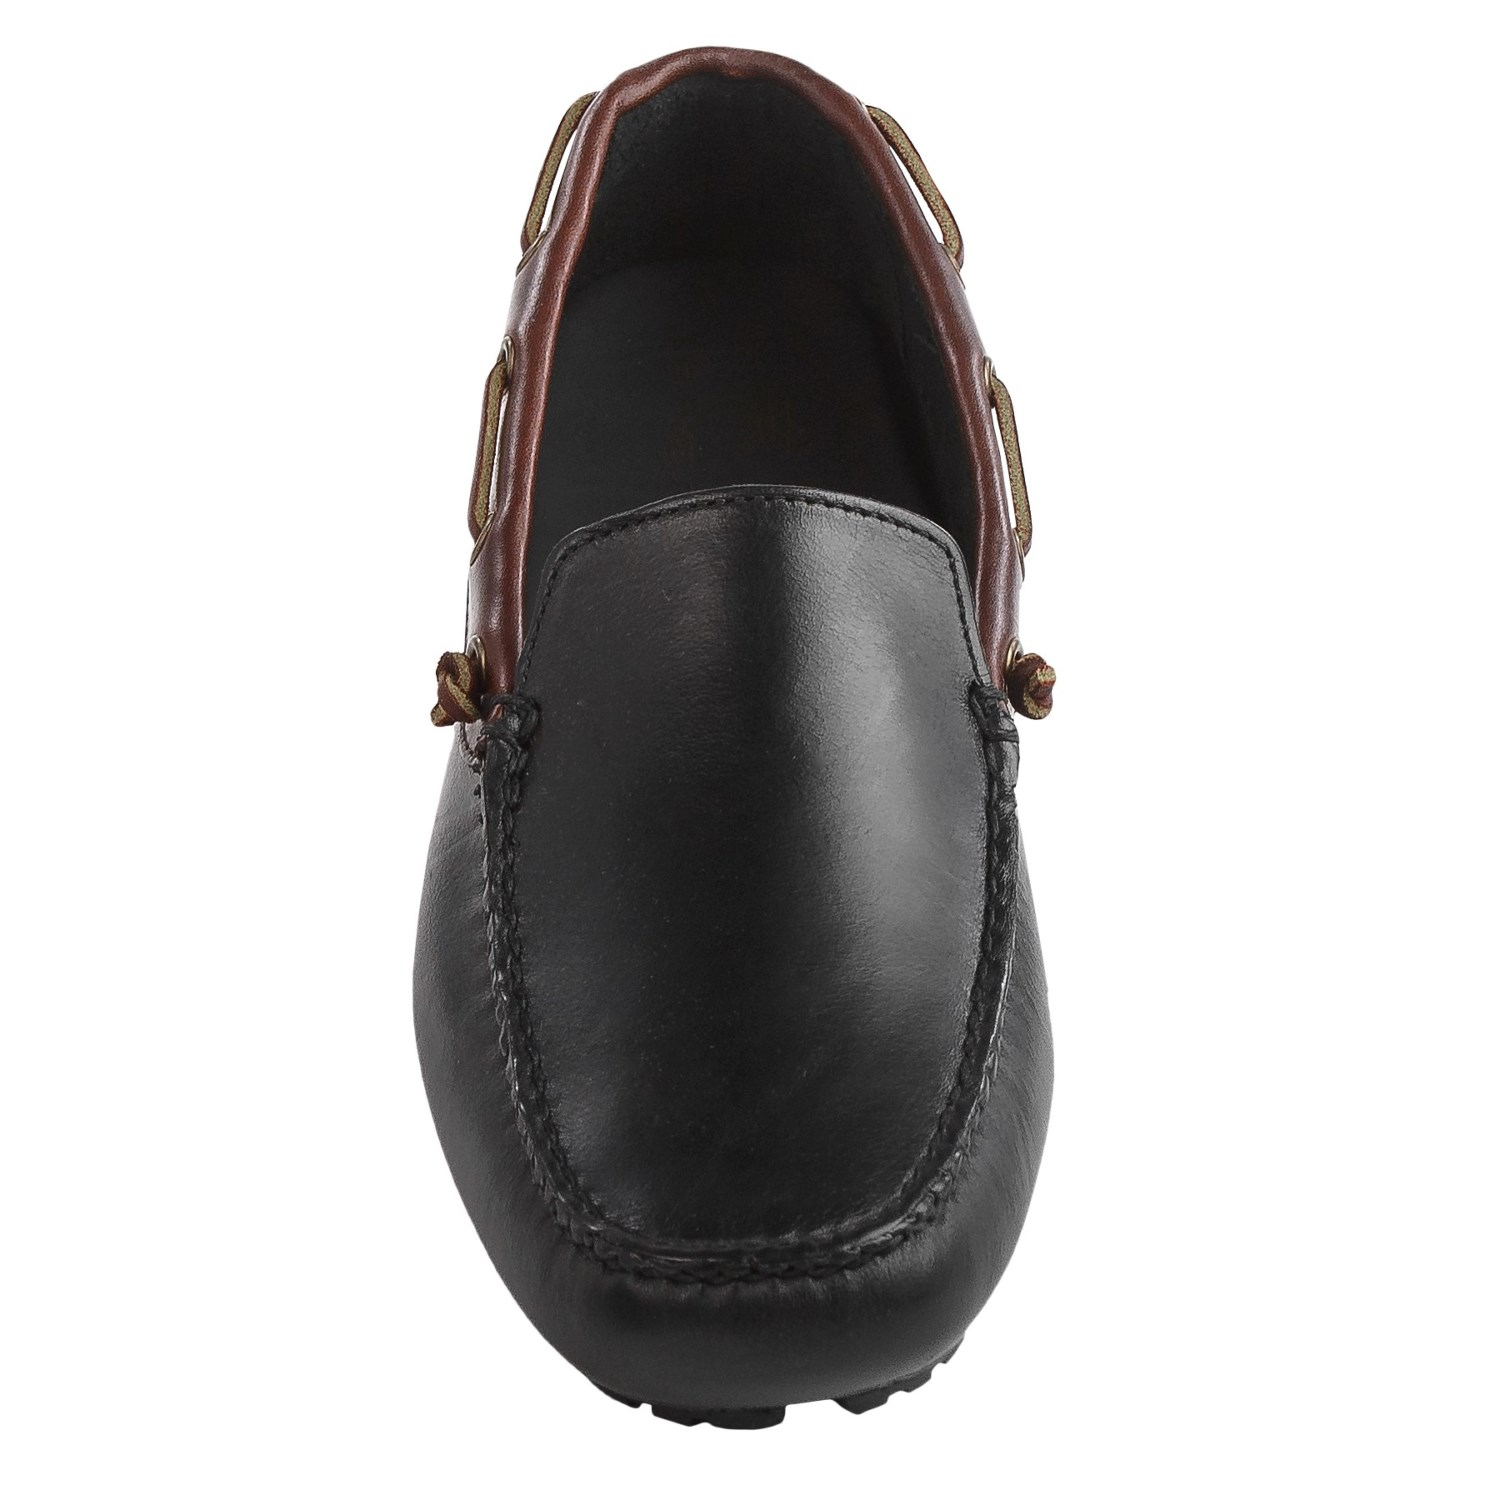 Black Leather Magellan Shoes